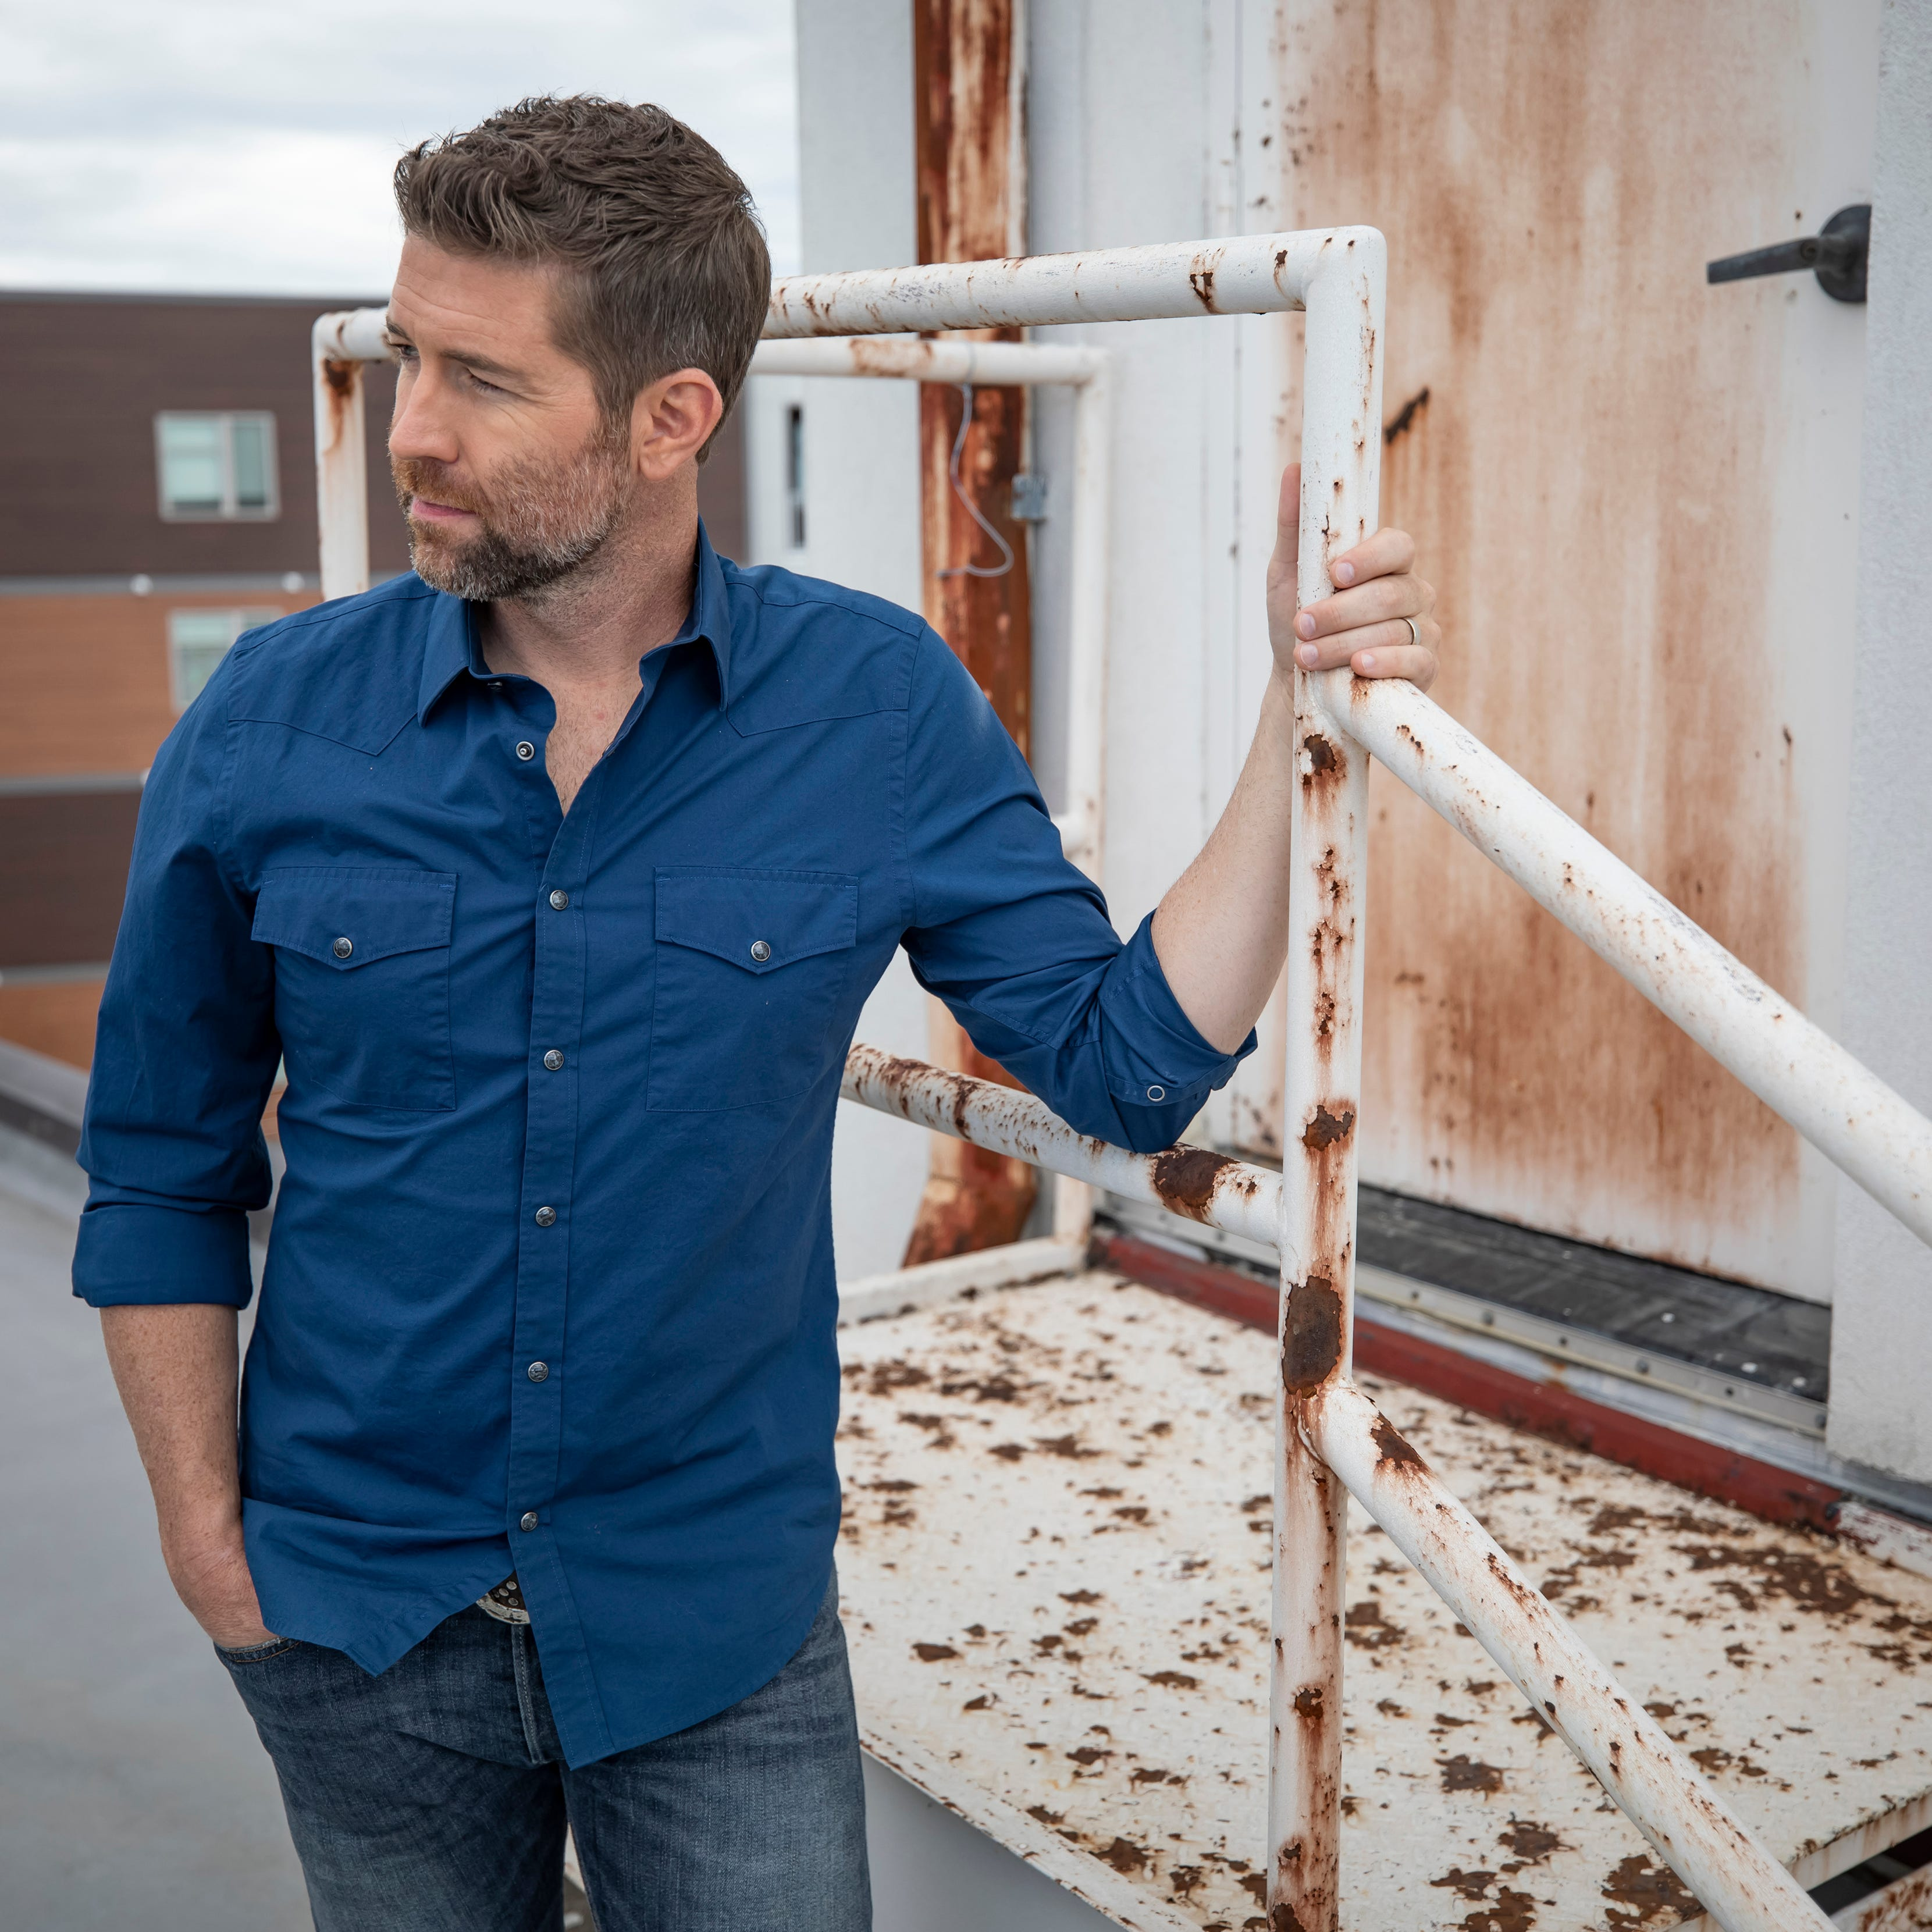 Nashville recording artist Josh Turner is coming to San Angelo in 2019, tickets on sale Friday